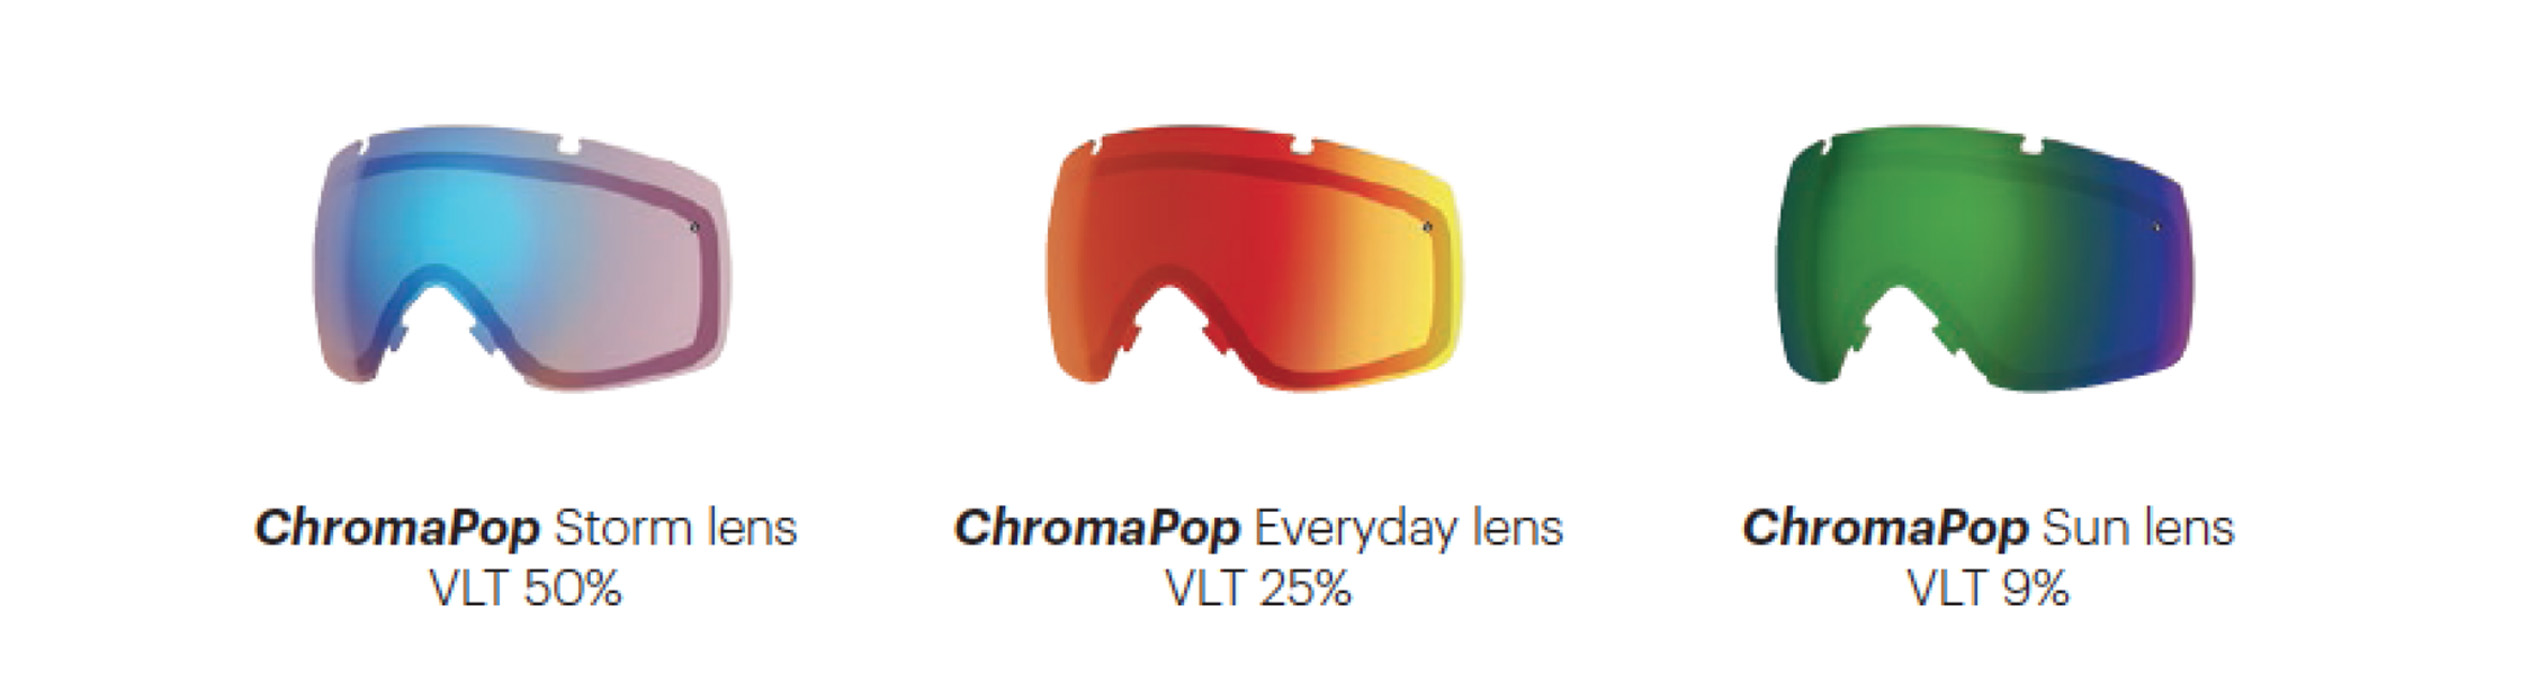 50f3fd2cfa0 The interchangeable lenses are available in select colorways of the I O7